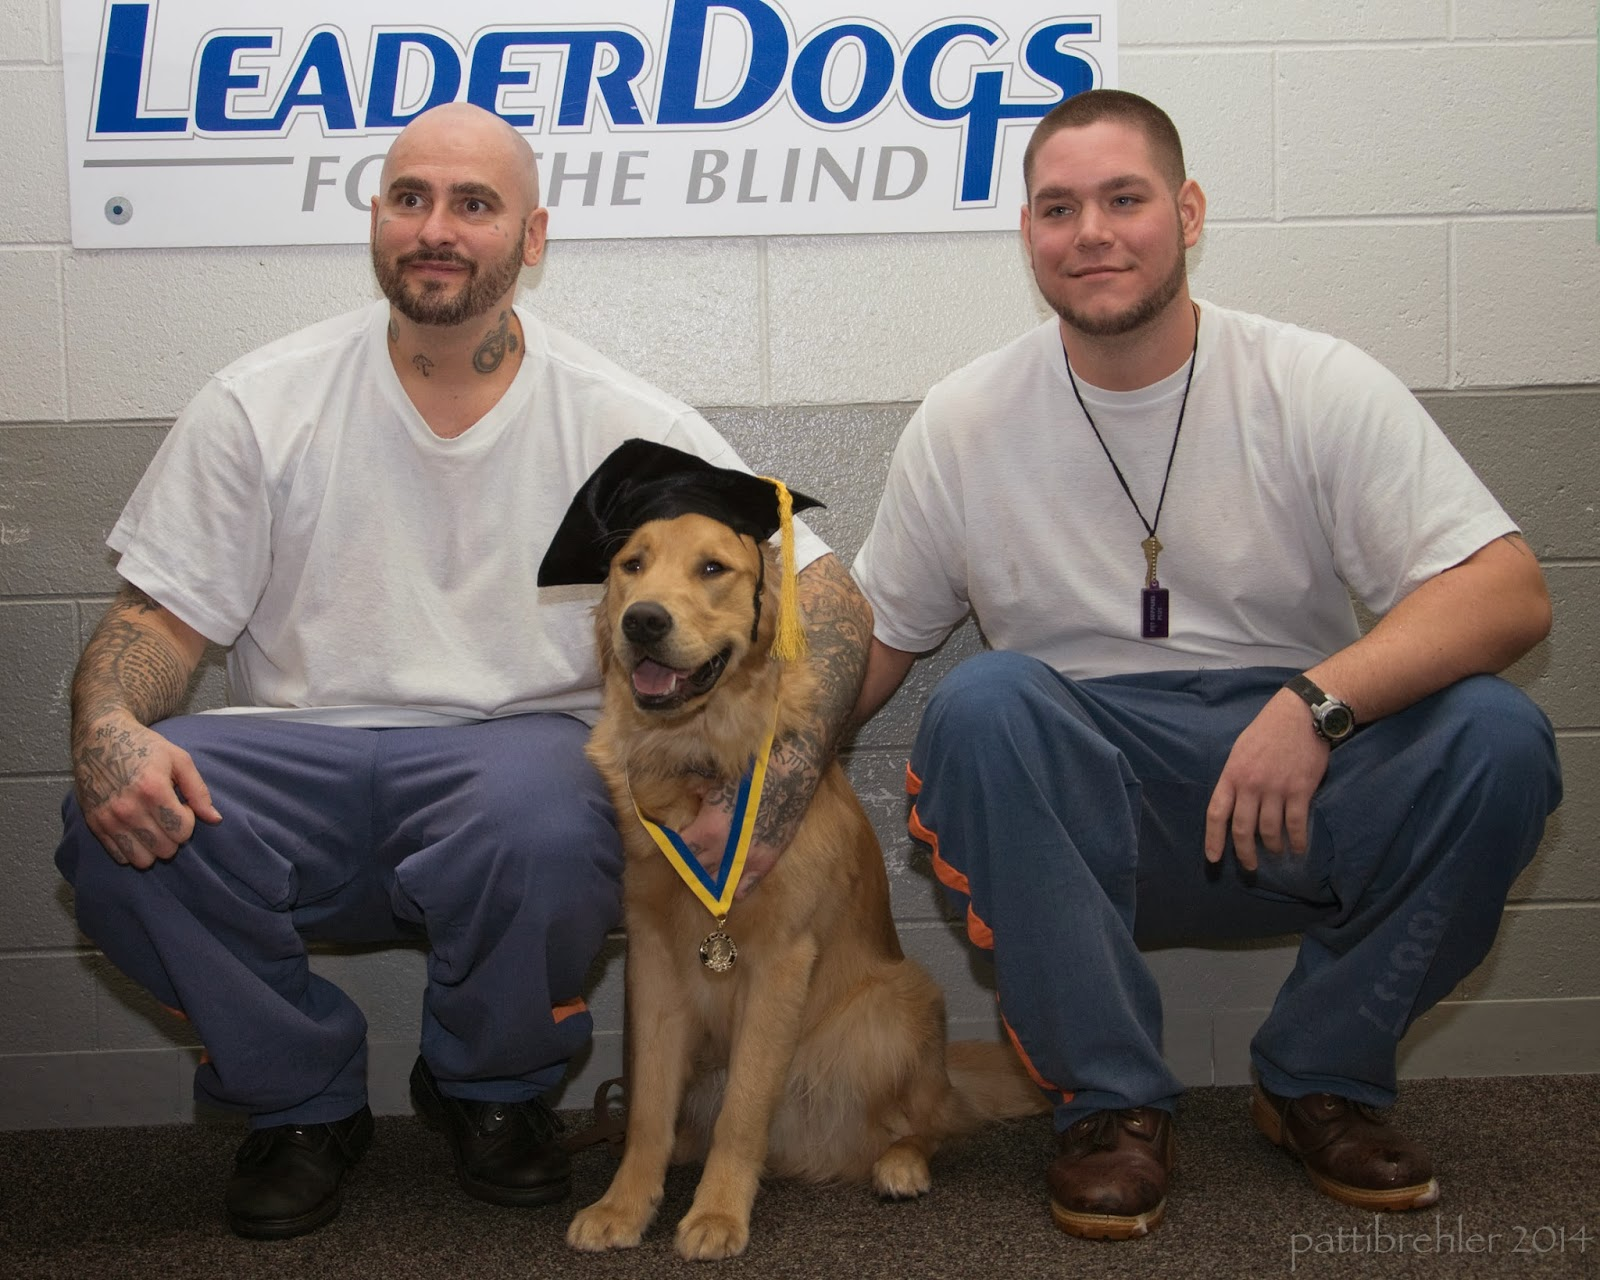 Two men are squatting down with a golden retriever sitting betweent hem. The men are wearing white t-shirts and blue pants. The golden retriever is wearing a black graduation cap and a yellow and blue ribbon with a medal around its neck. Behind them on the wall is a white poster with Leader Dogs for the Blind on it.